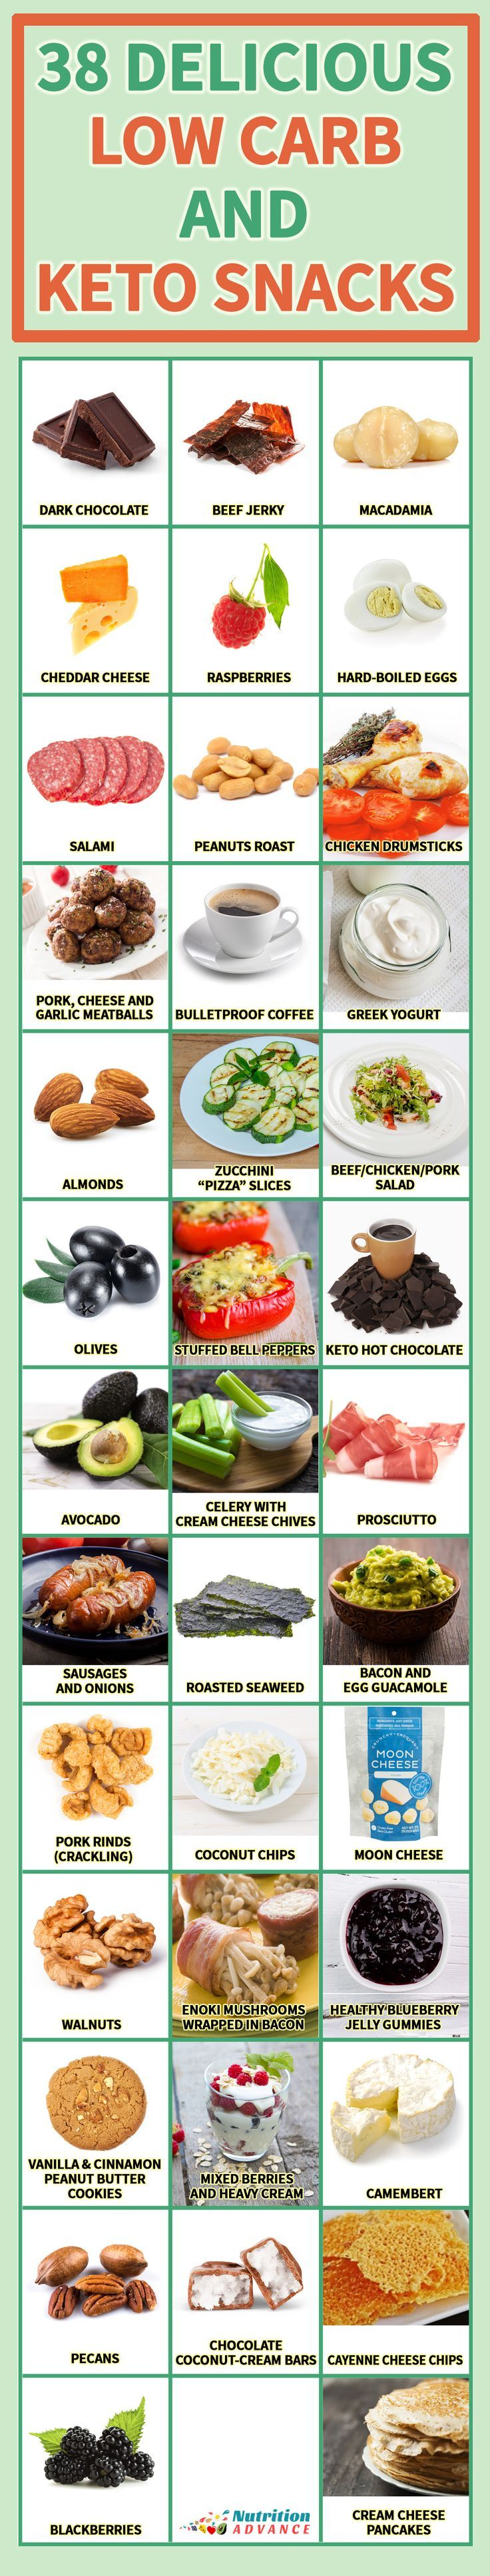 38 Delicious Low Carb and Keto Snacks - Looking for inspiration? Then here's a list of 38 delicious keto snacks, recipes, foods, and ideas.